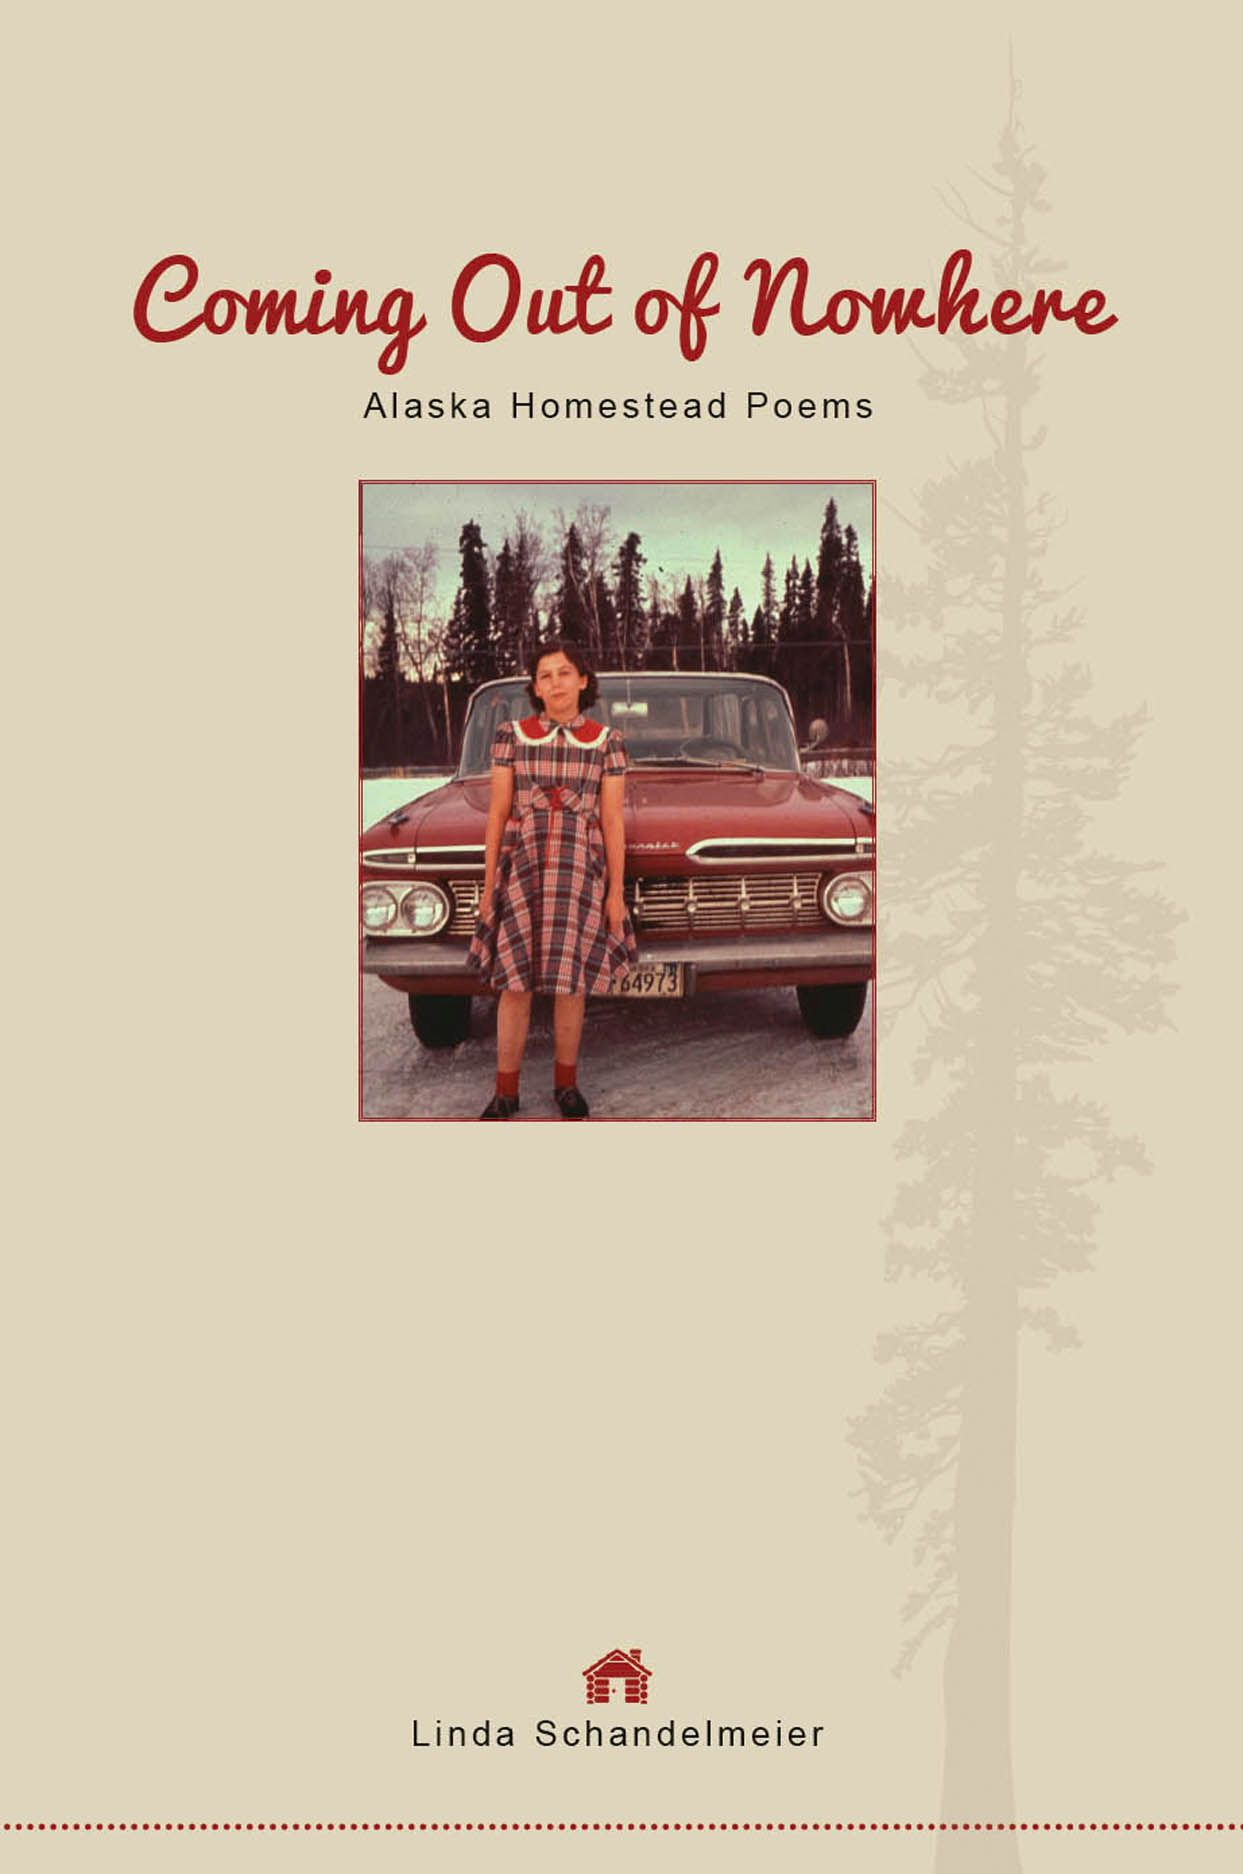 Coming Out of Nowhere: Alaska Homestead Poems